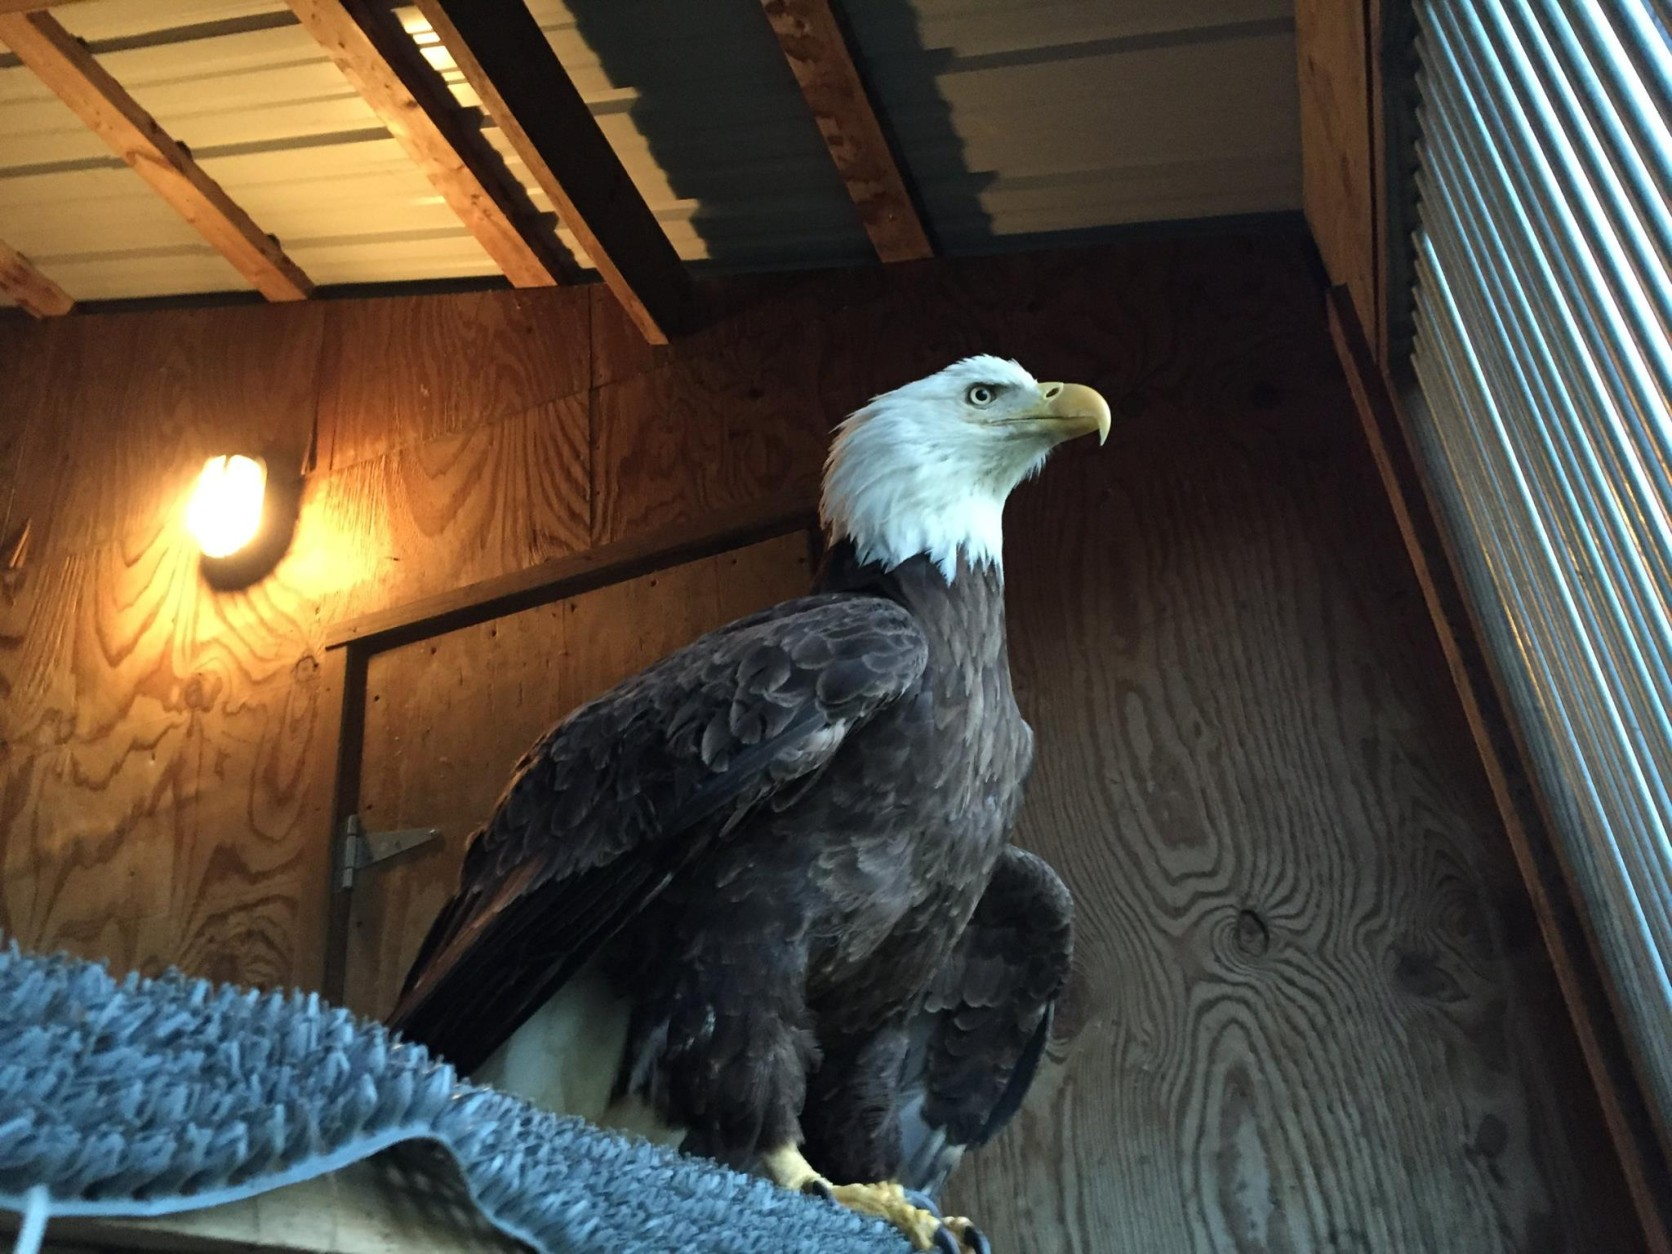 """The injured bald eagle named """"Trust"""" was taken to Owl Moon Raptor Center in March for rehabilitation. (Courtesy Owl Moon Raptor Center)"""